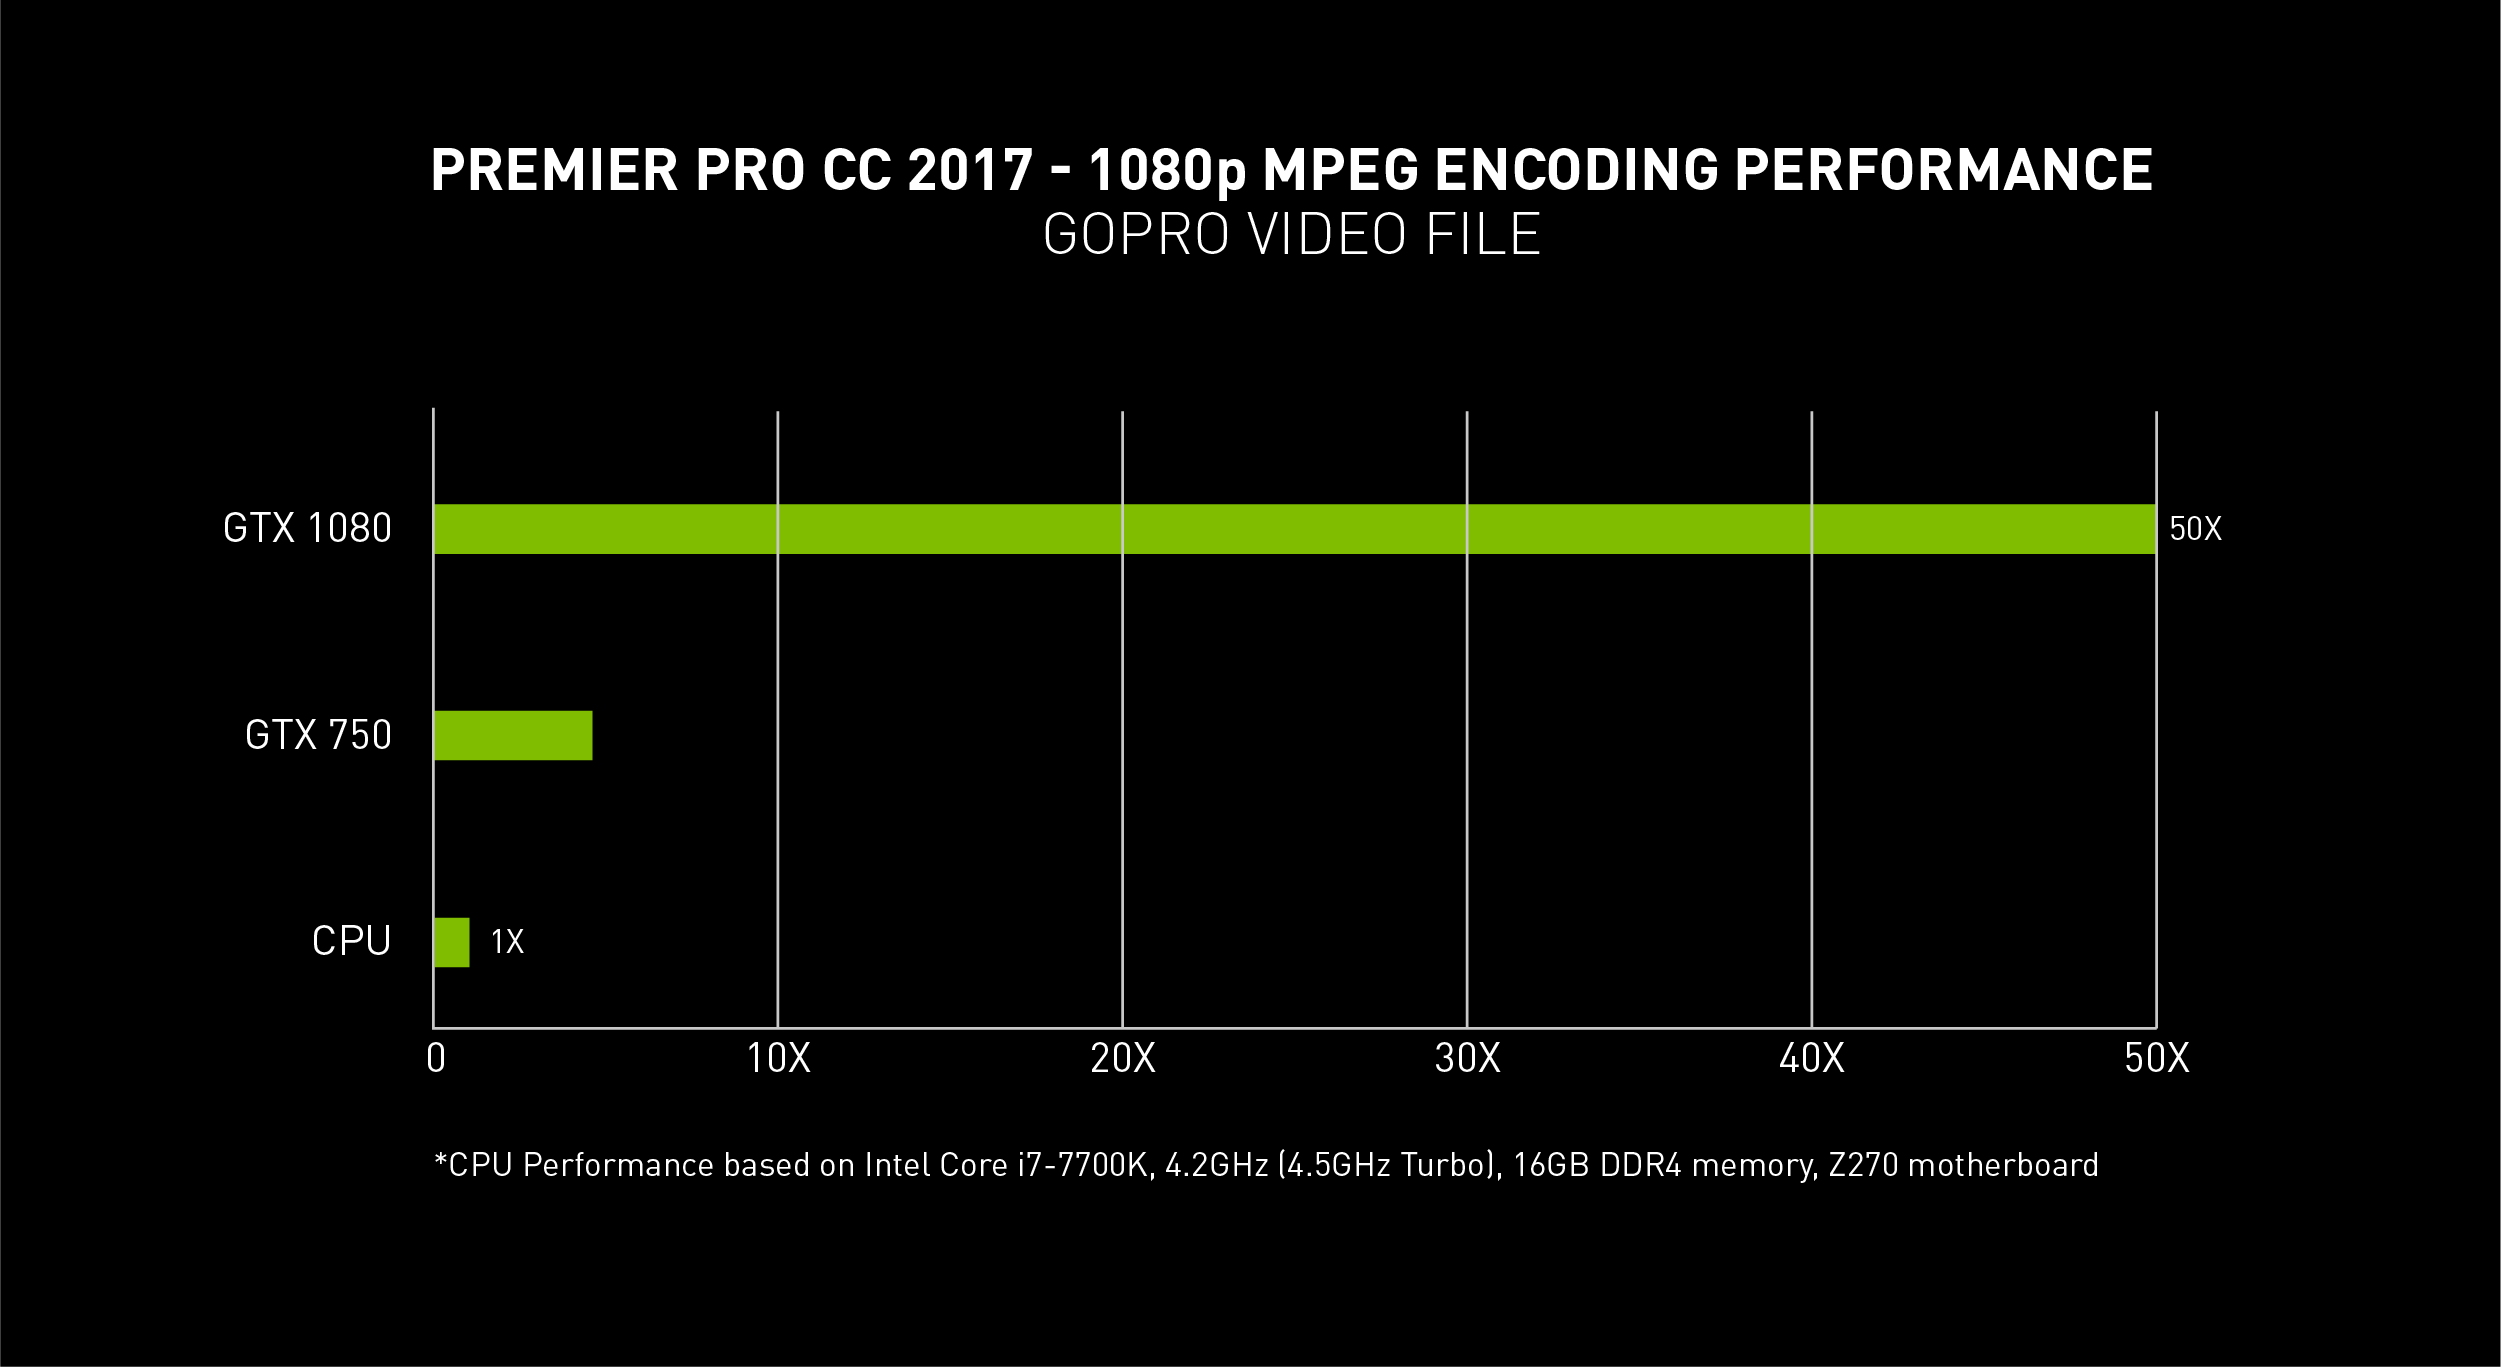 Produce Videos in Adobe Premiere Pro up to 50x Faster with